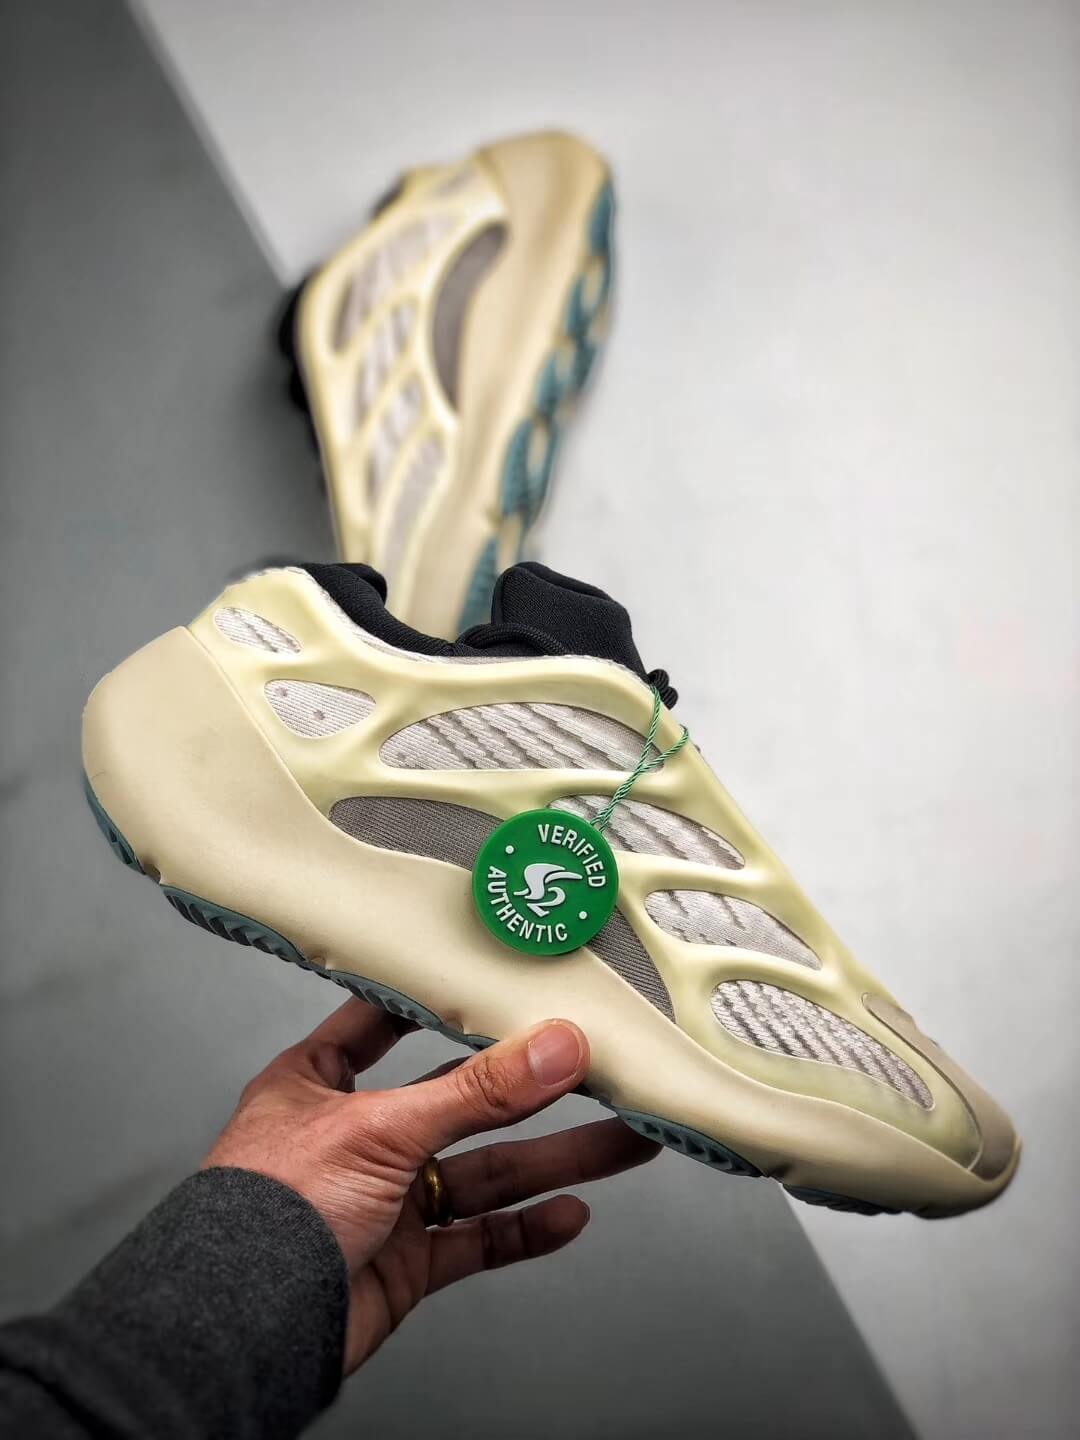 The Adidas Yeezy 700 V3 Azael Reflective Sneaker White Mesh Open Work Upper EVA Outer Sole Top RepSneakers 02